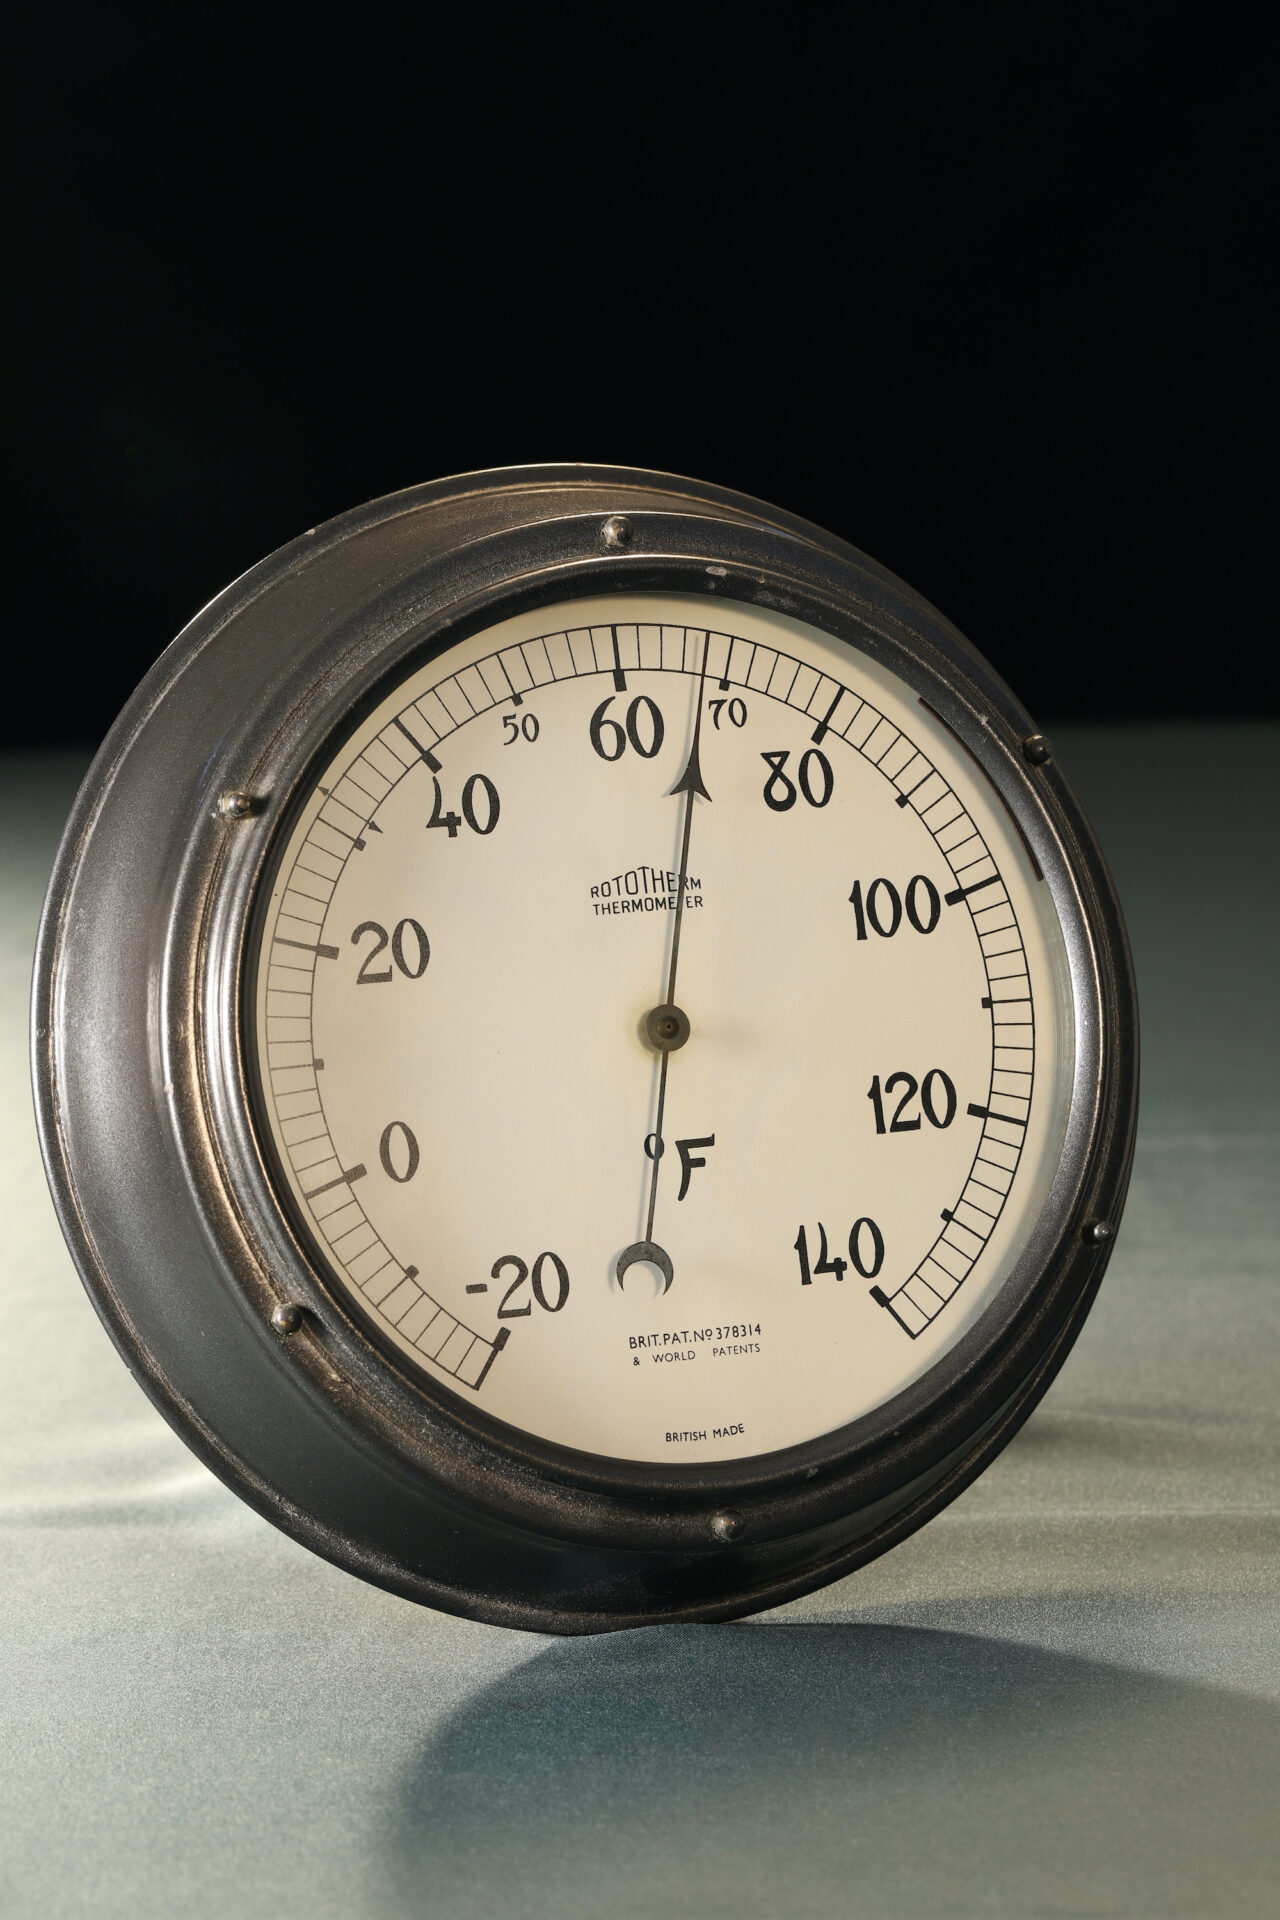 Image of Rototherm Thermometer c1932 taken from lefthand side